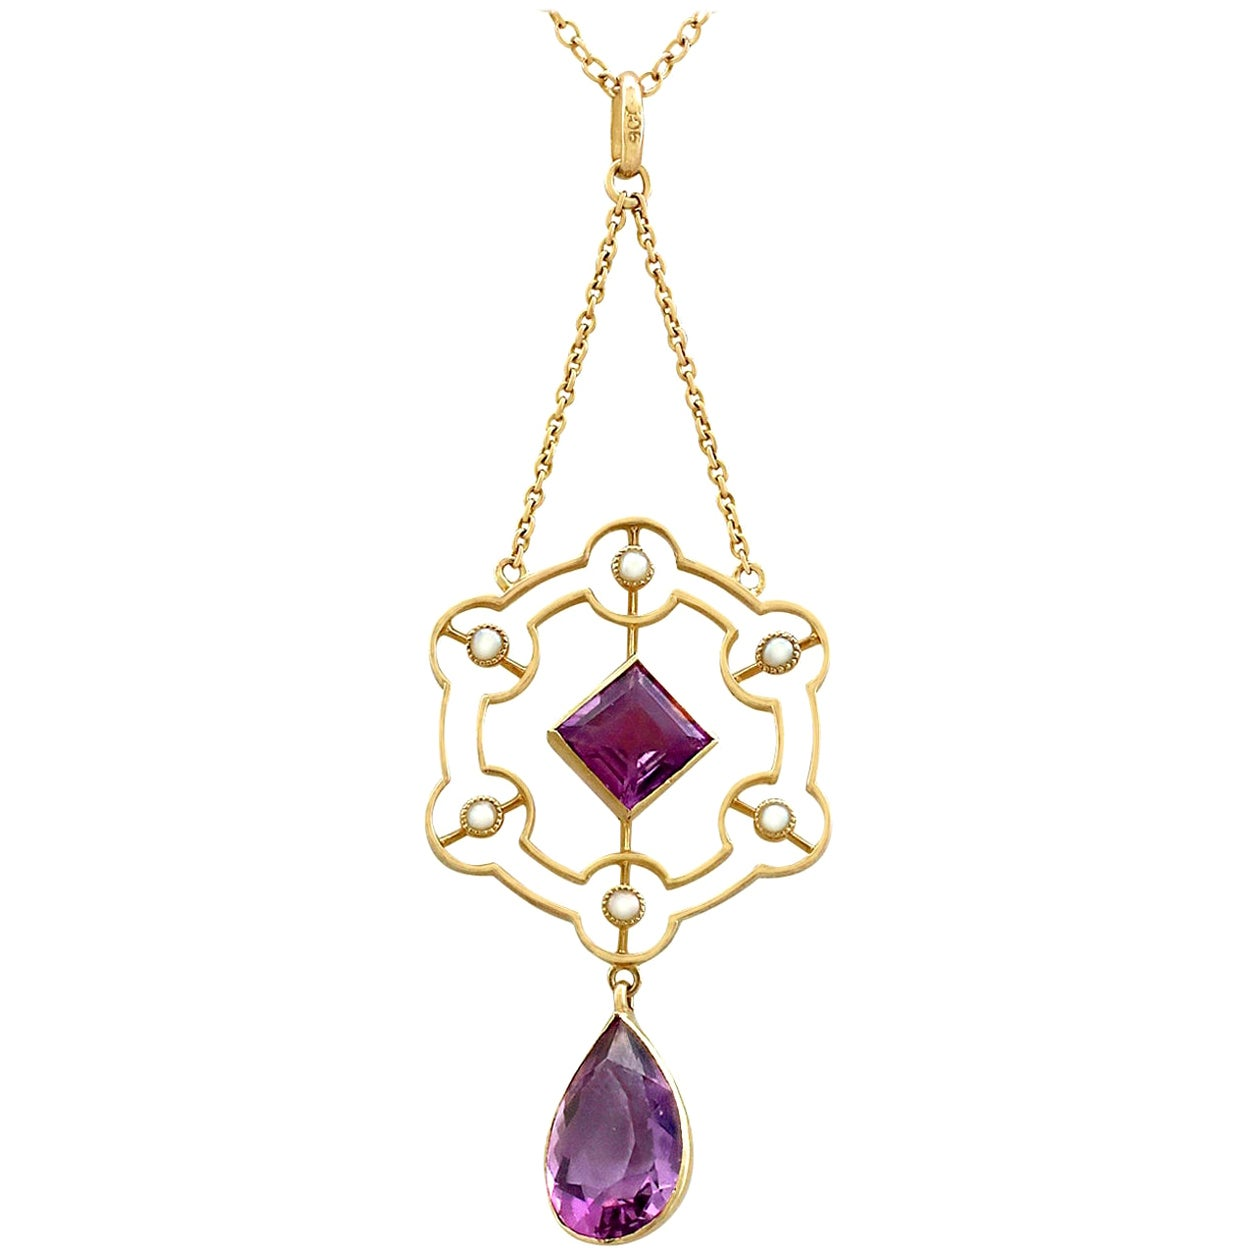 Antique Victorian 2.40 Carat Amethyst and Pearl Yellow Gold Pendant